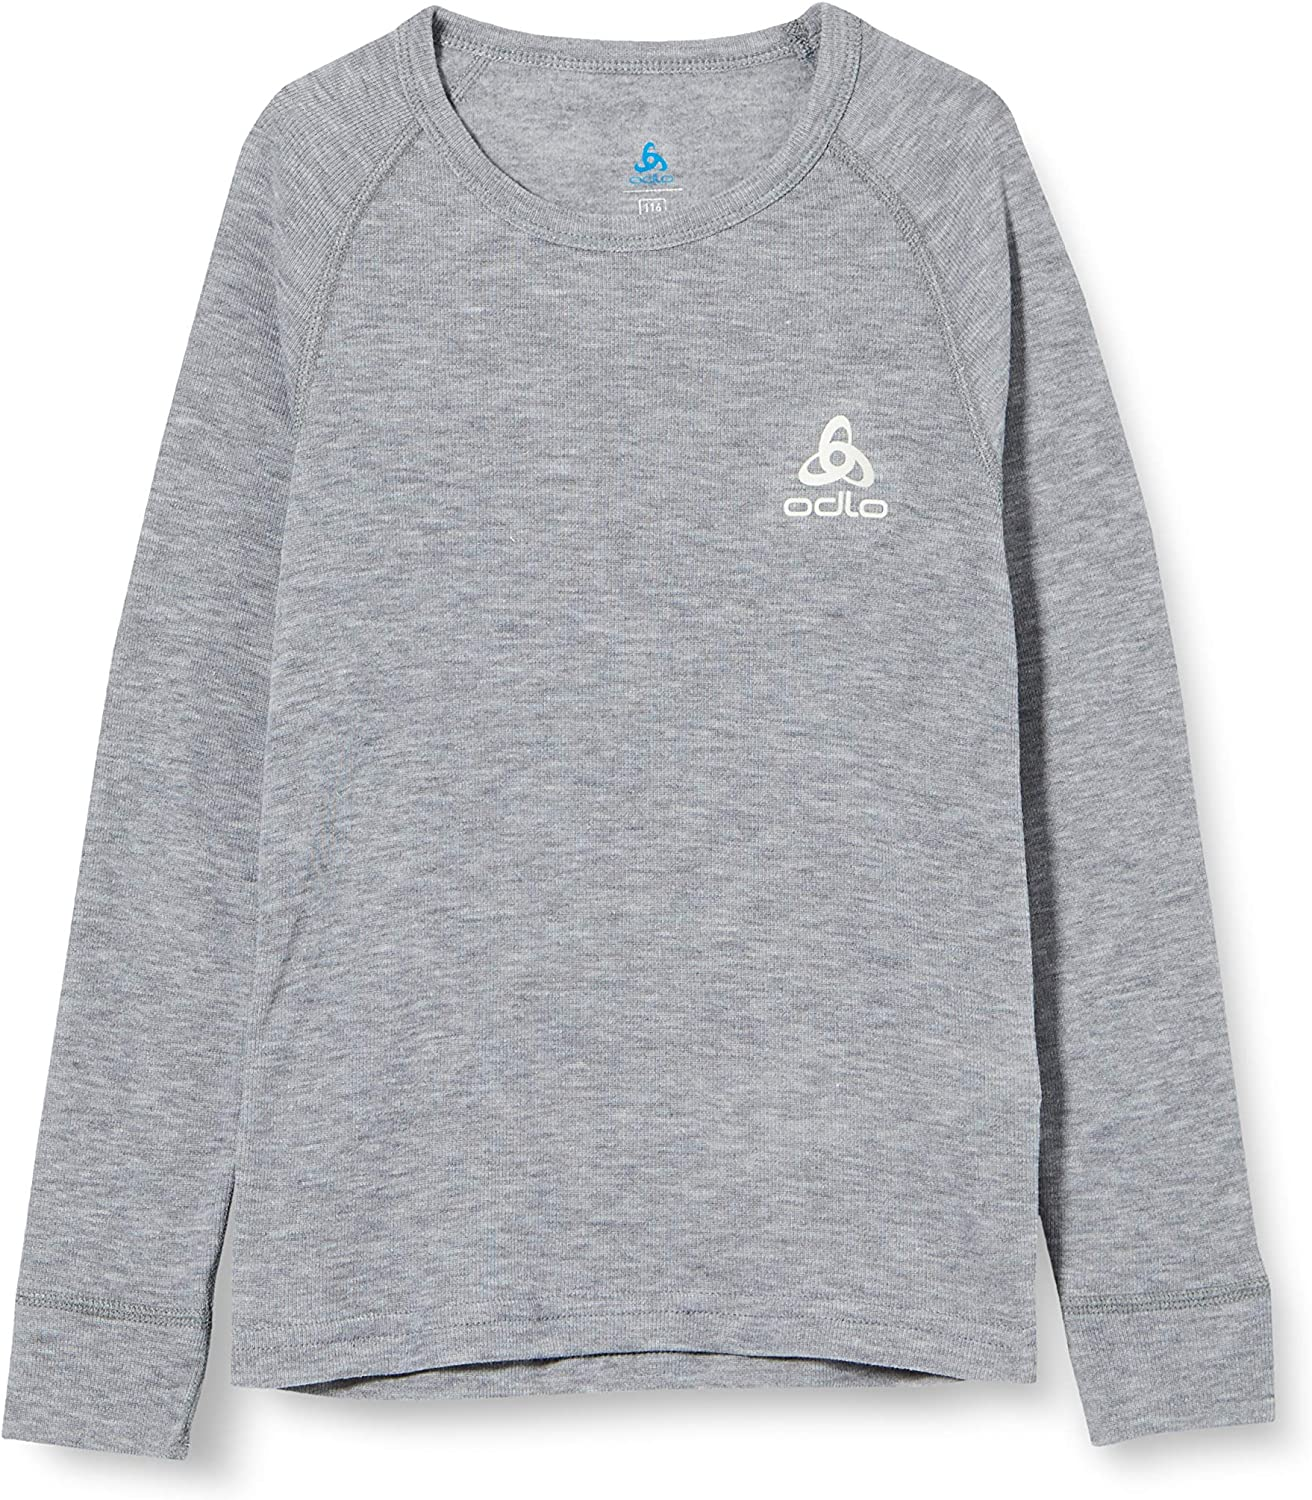 ODLO childrens Long-Sleeved Crew Neck T-Shirt with X-Warm 155169